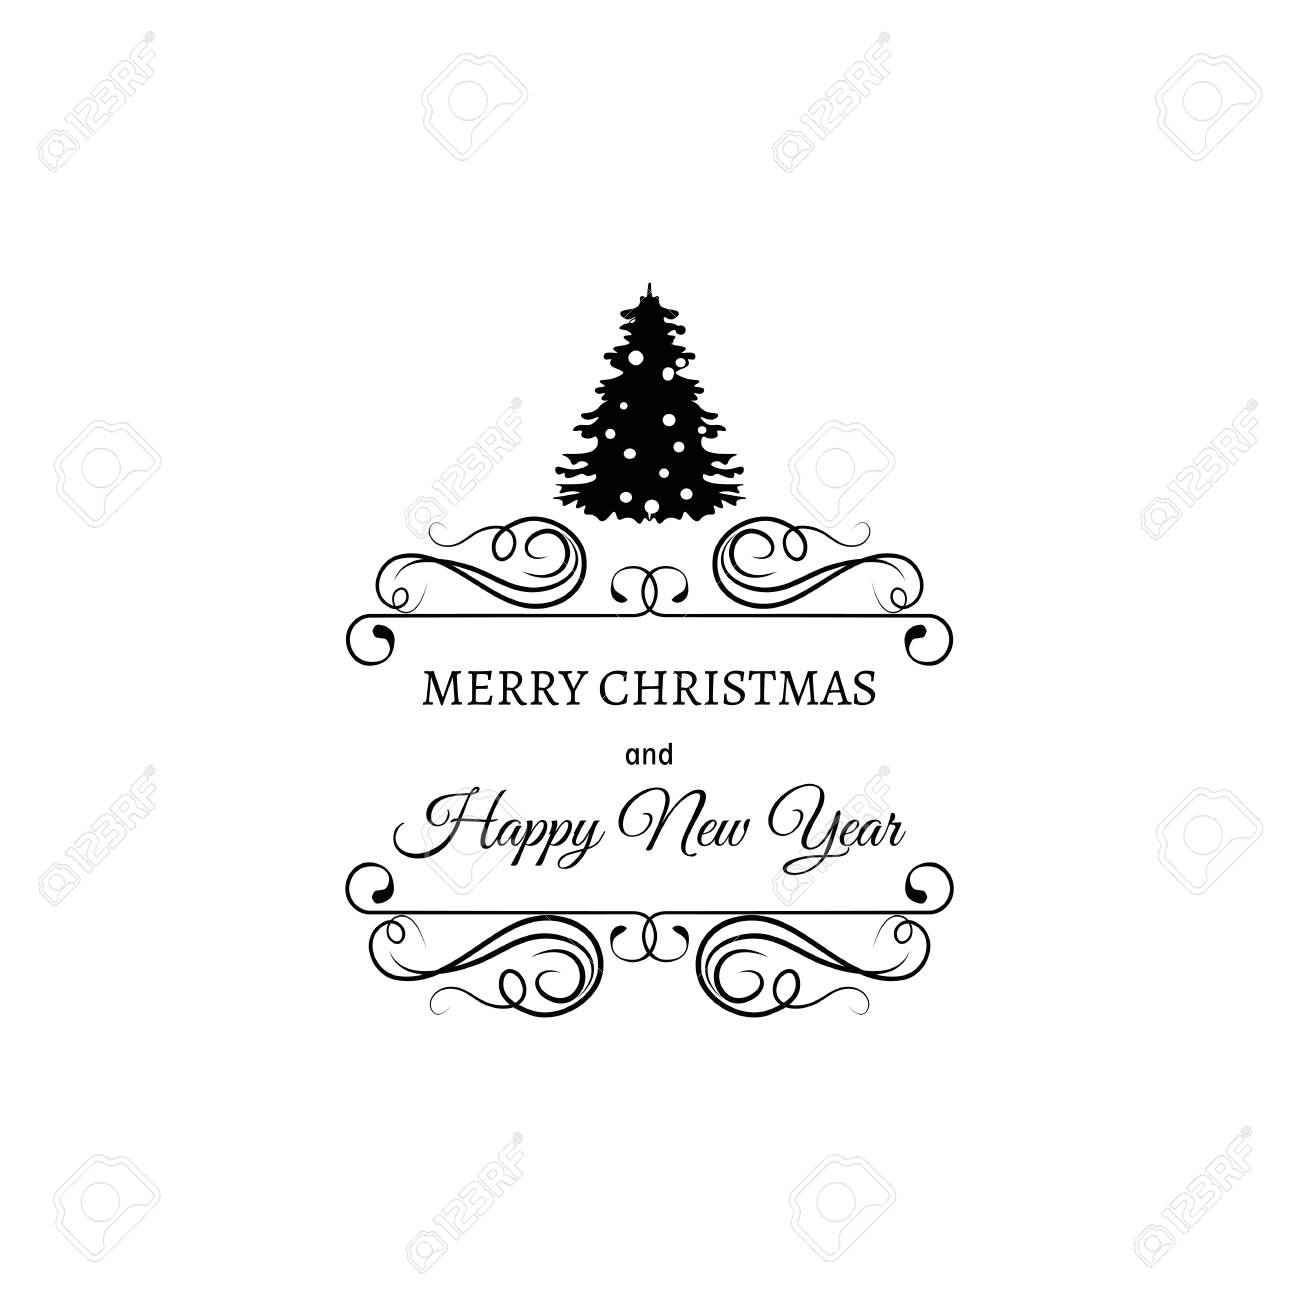 christmas tree merry christmas and happy new year label template for greeting cards